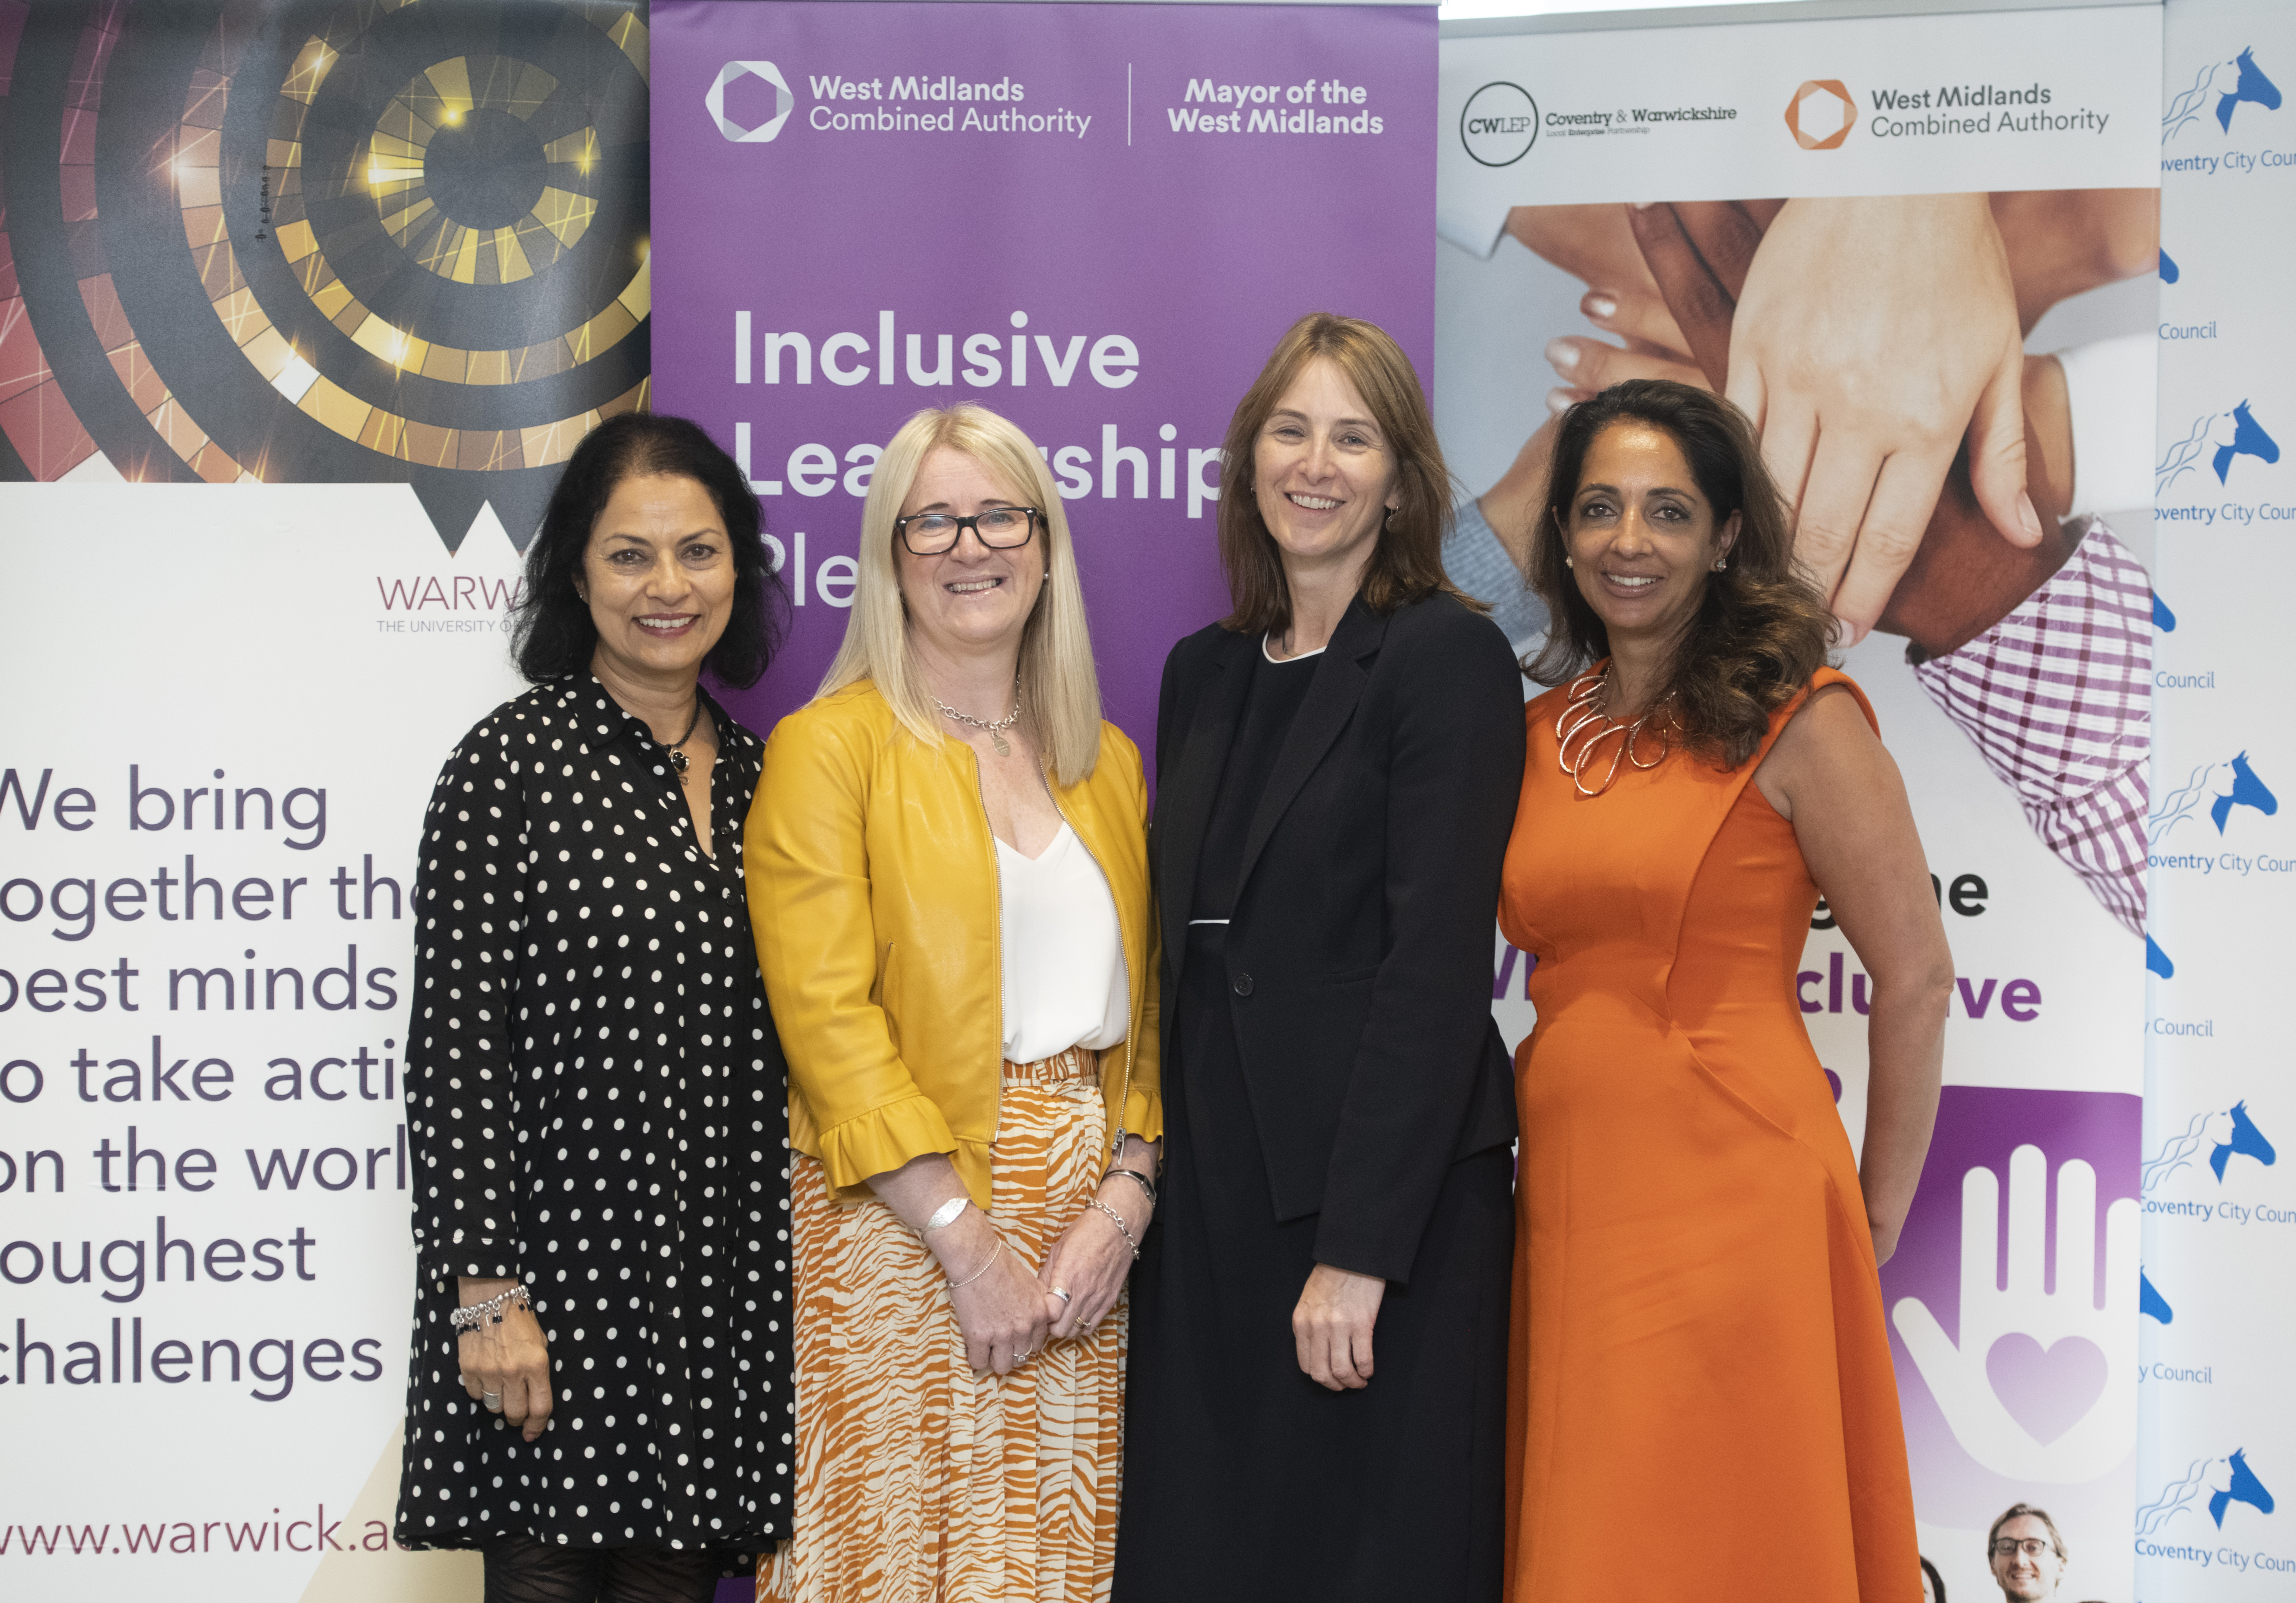 The WMCA brings Coventry businesses together for Inclusive Leadership Pledge